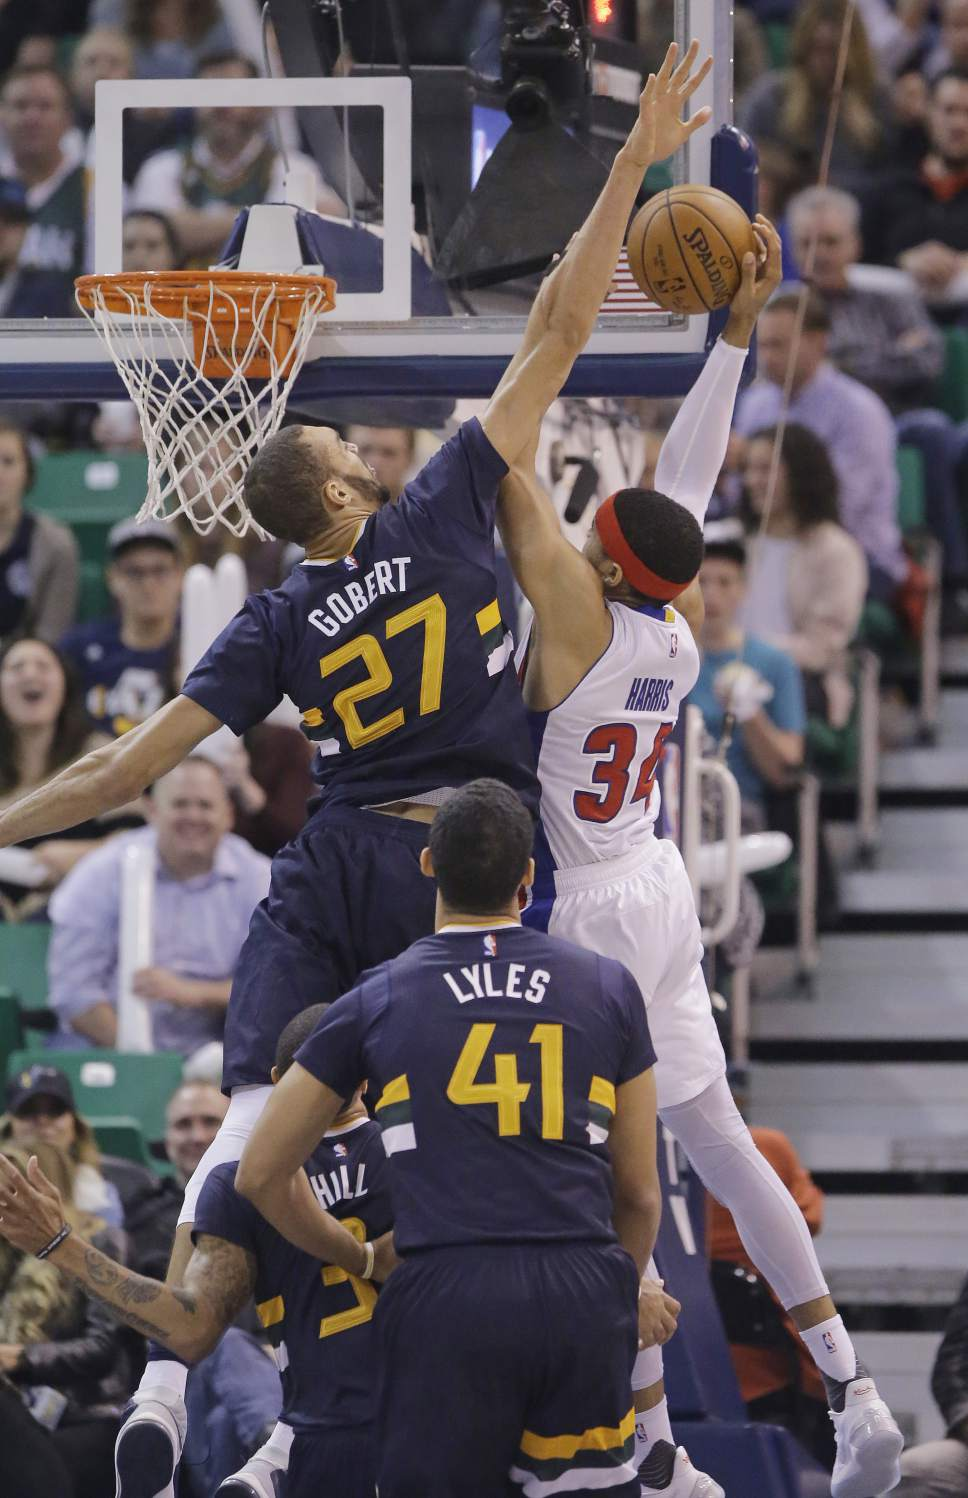 Utah Jazz center Rudy Gobert (27) defends against Detroit Pistons forward Tobias Harris (34) in the second half during an NBA basketball game Friday, Jan. 13, 2017, in Salt Lake City. The Jazz won 110-77. (AP Photo/Rick Bowmer)